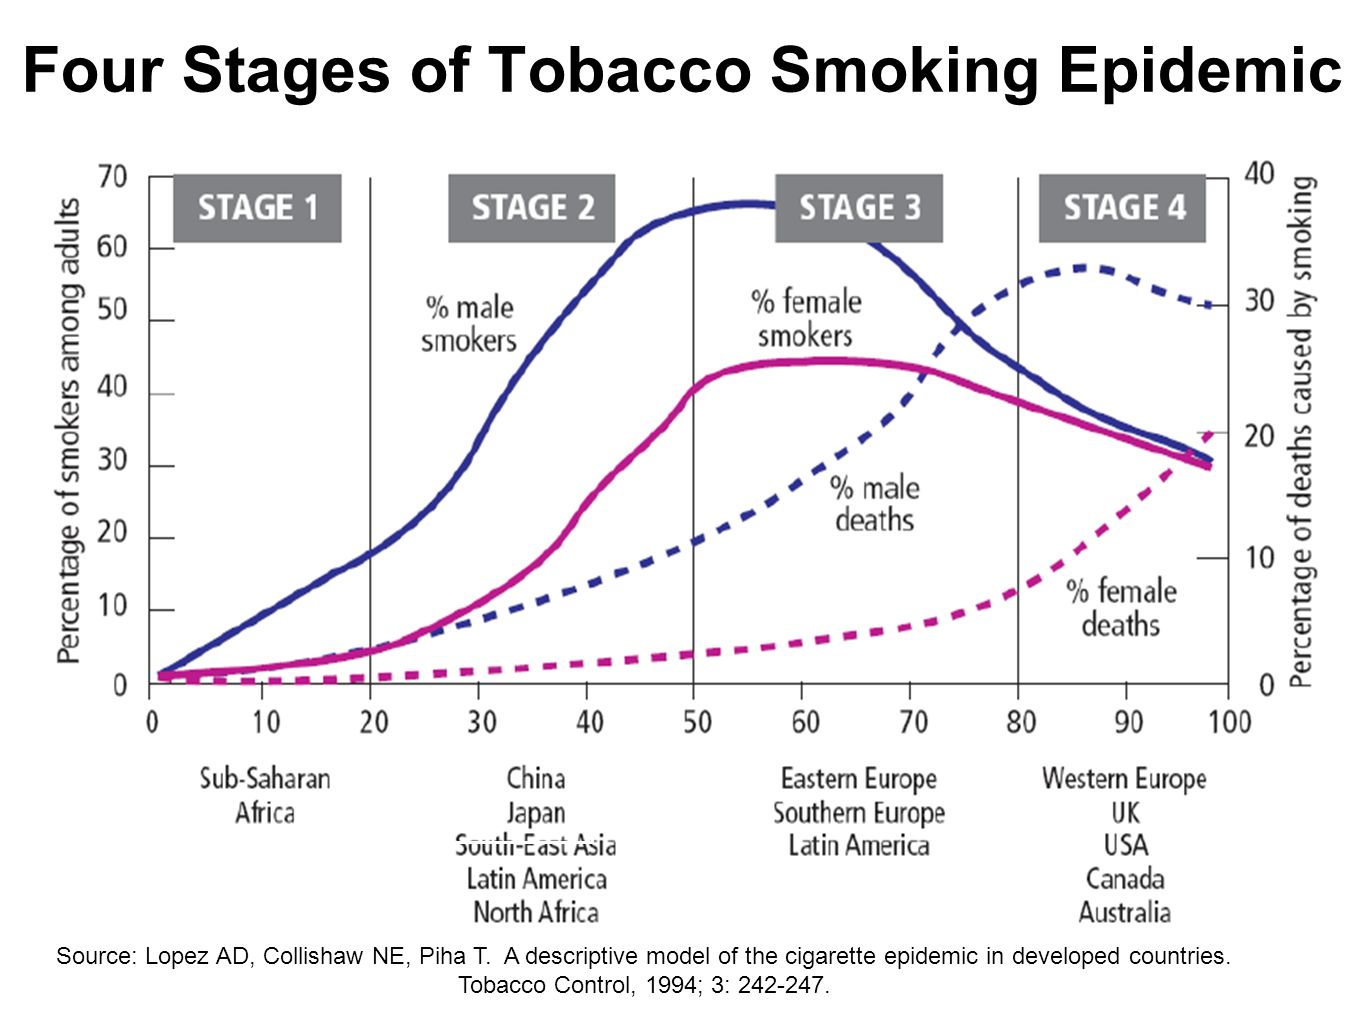 Four Stages of Tobacco Smoking Epidemic